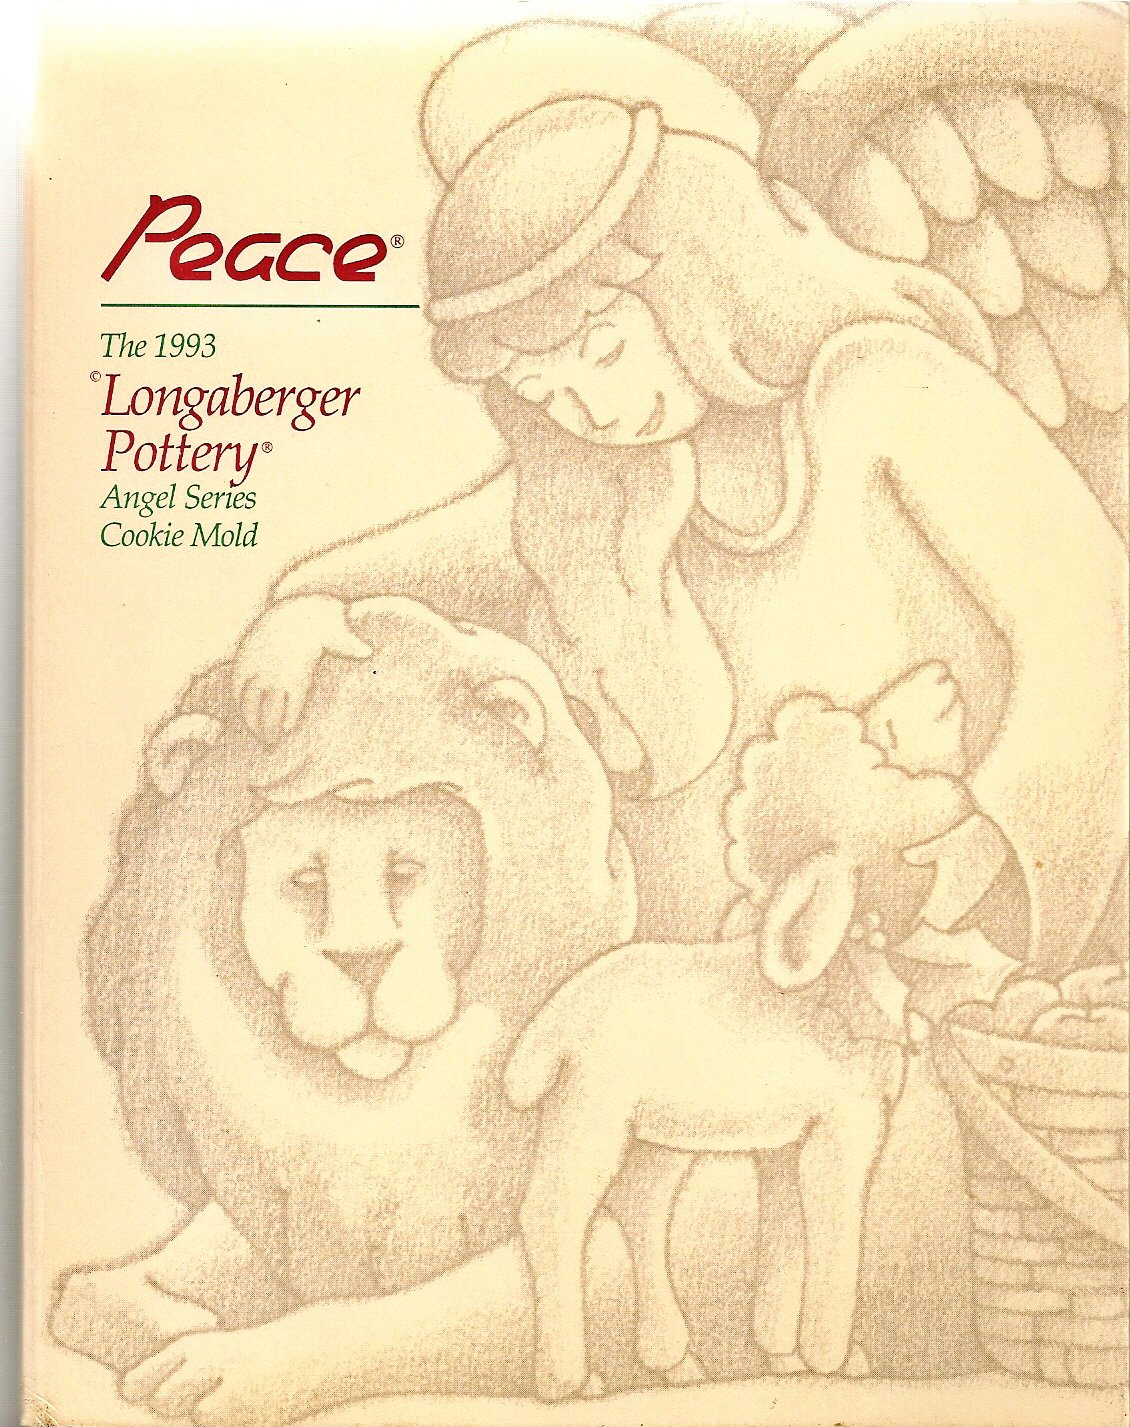 Longaberger Pottery Cookie Mold: 1993 Angel Series - Peace